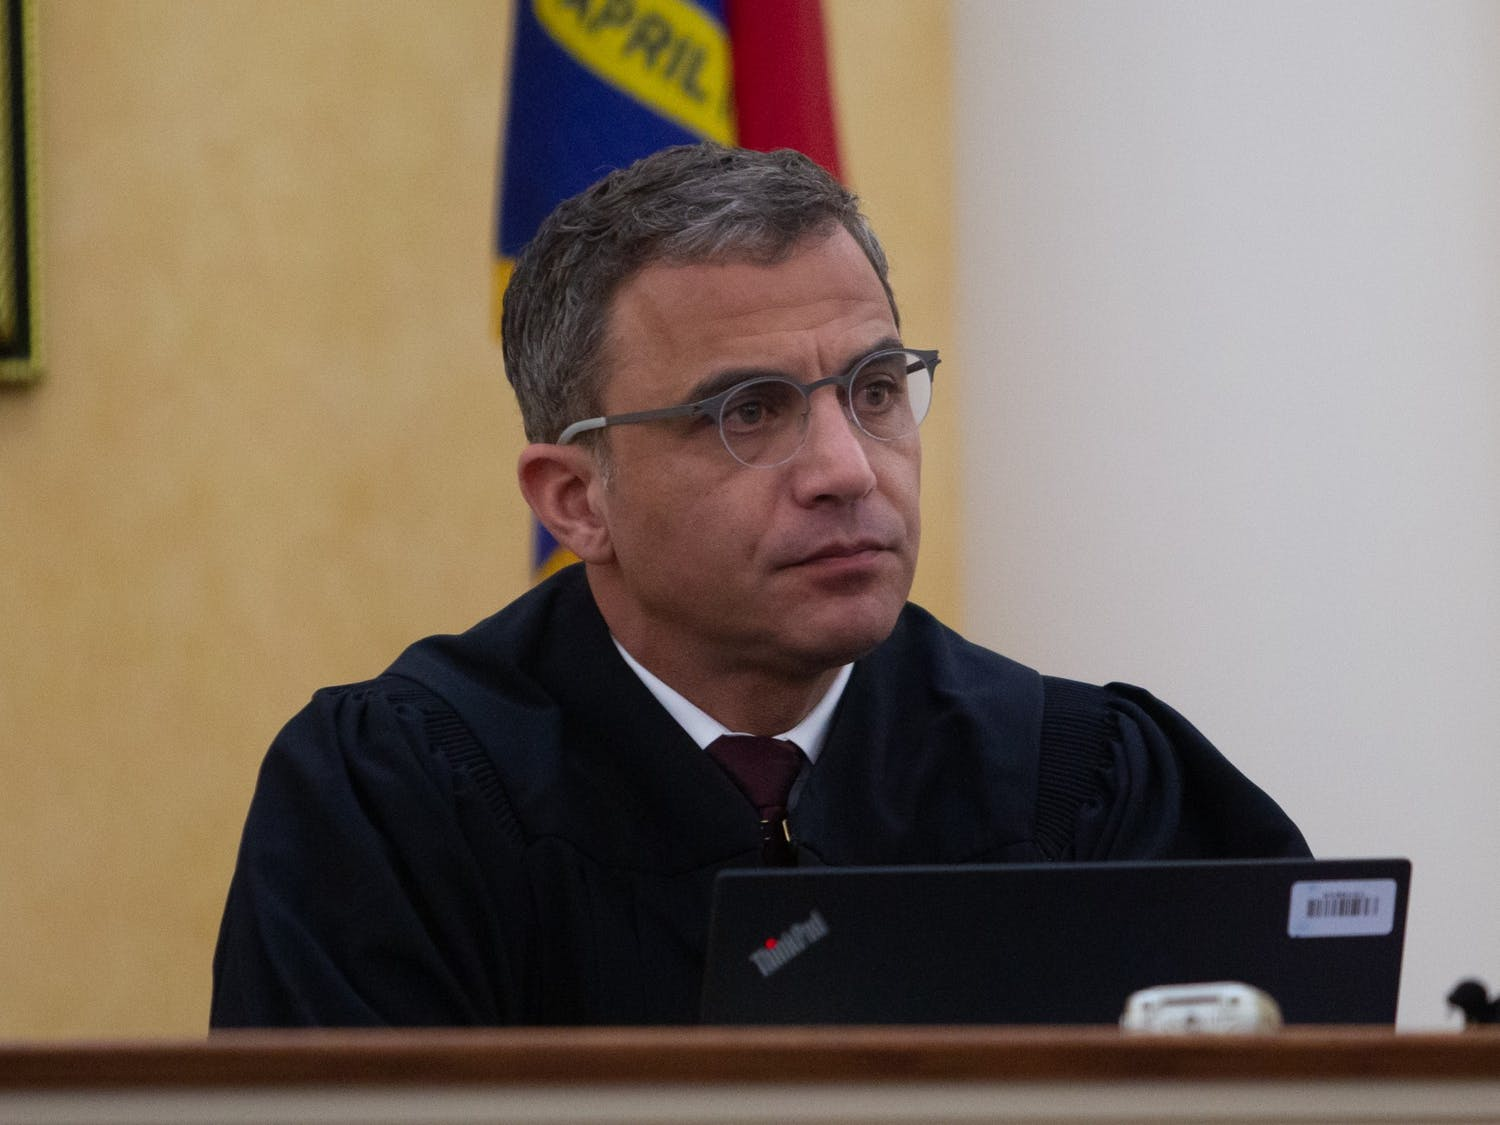 Judge Allen Baddour looks on as SCV lawyer Boyd Stourges speaks during the hearing on Wednesday, Feb. 12, 2020. Judge Baddour ruled to vacate the consent order an dismiss the lawsuit regarding Silent Sam.